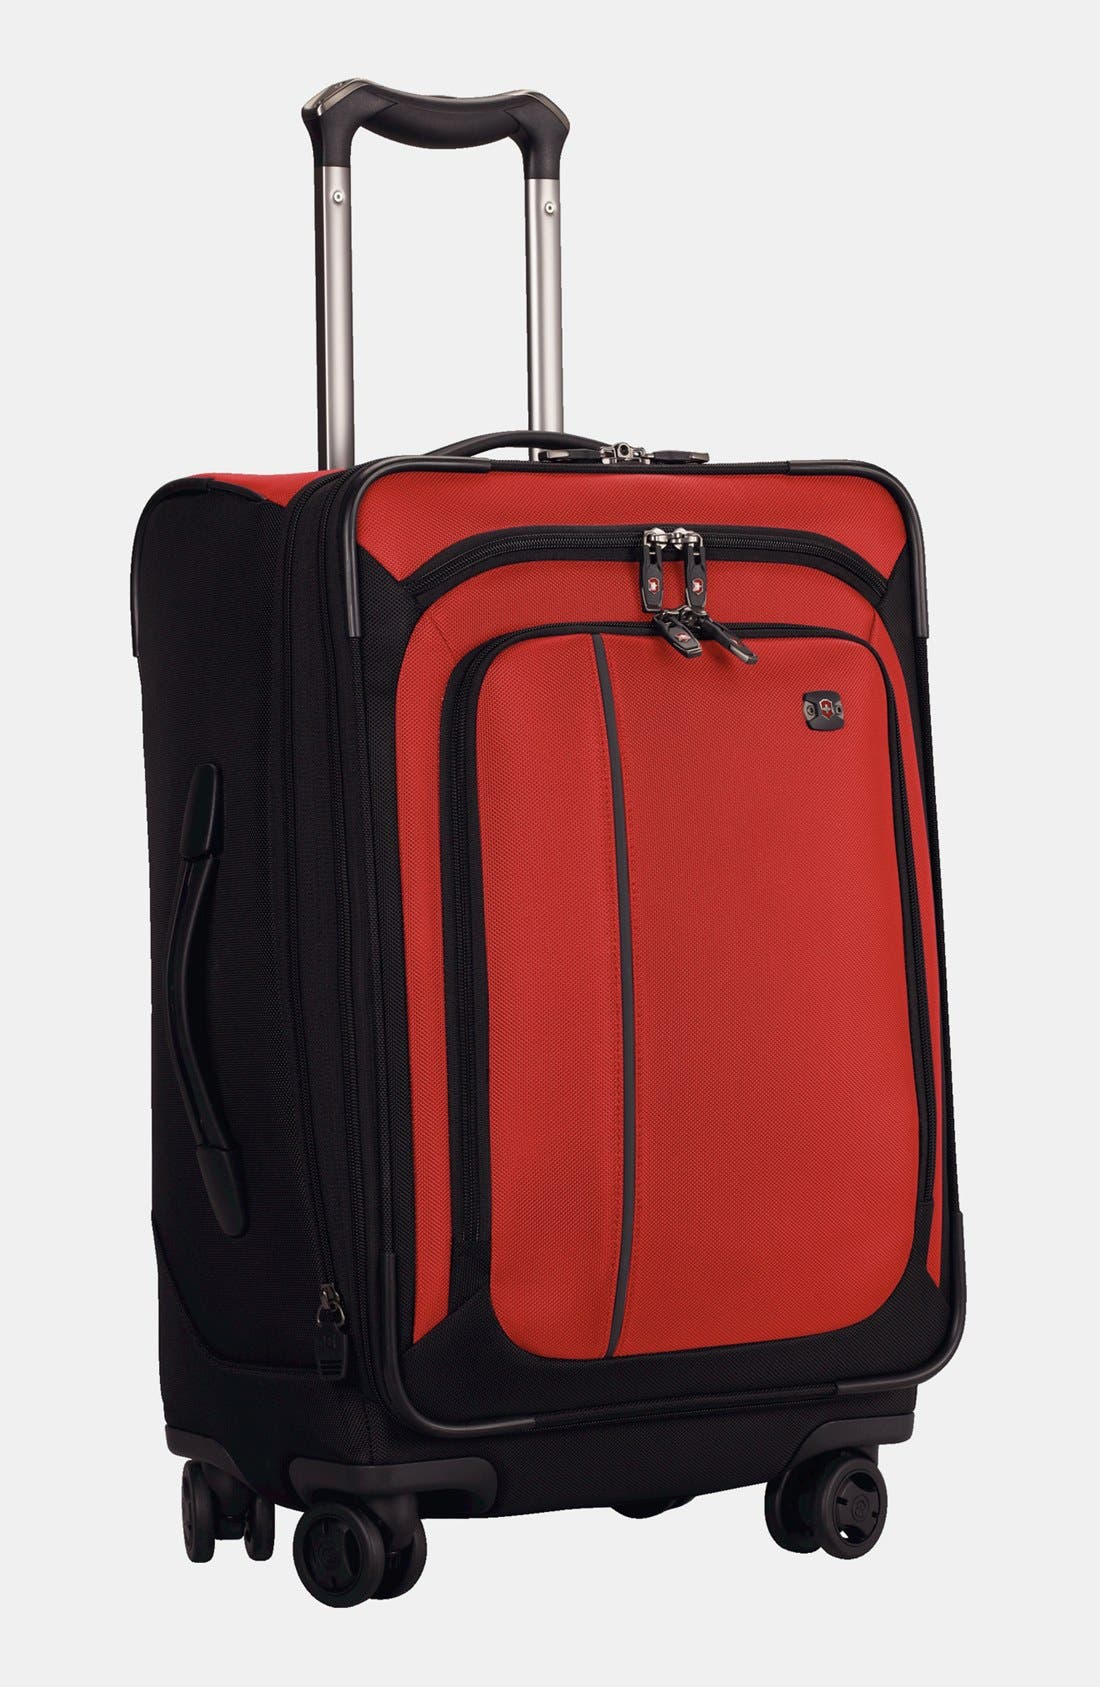 Alternate Image 1 Selected - Victorinox Swiss Army® 'Werks - Traveler' Rolling Suitcase (22 Inch)